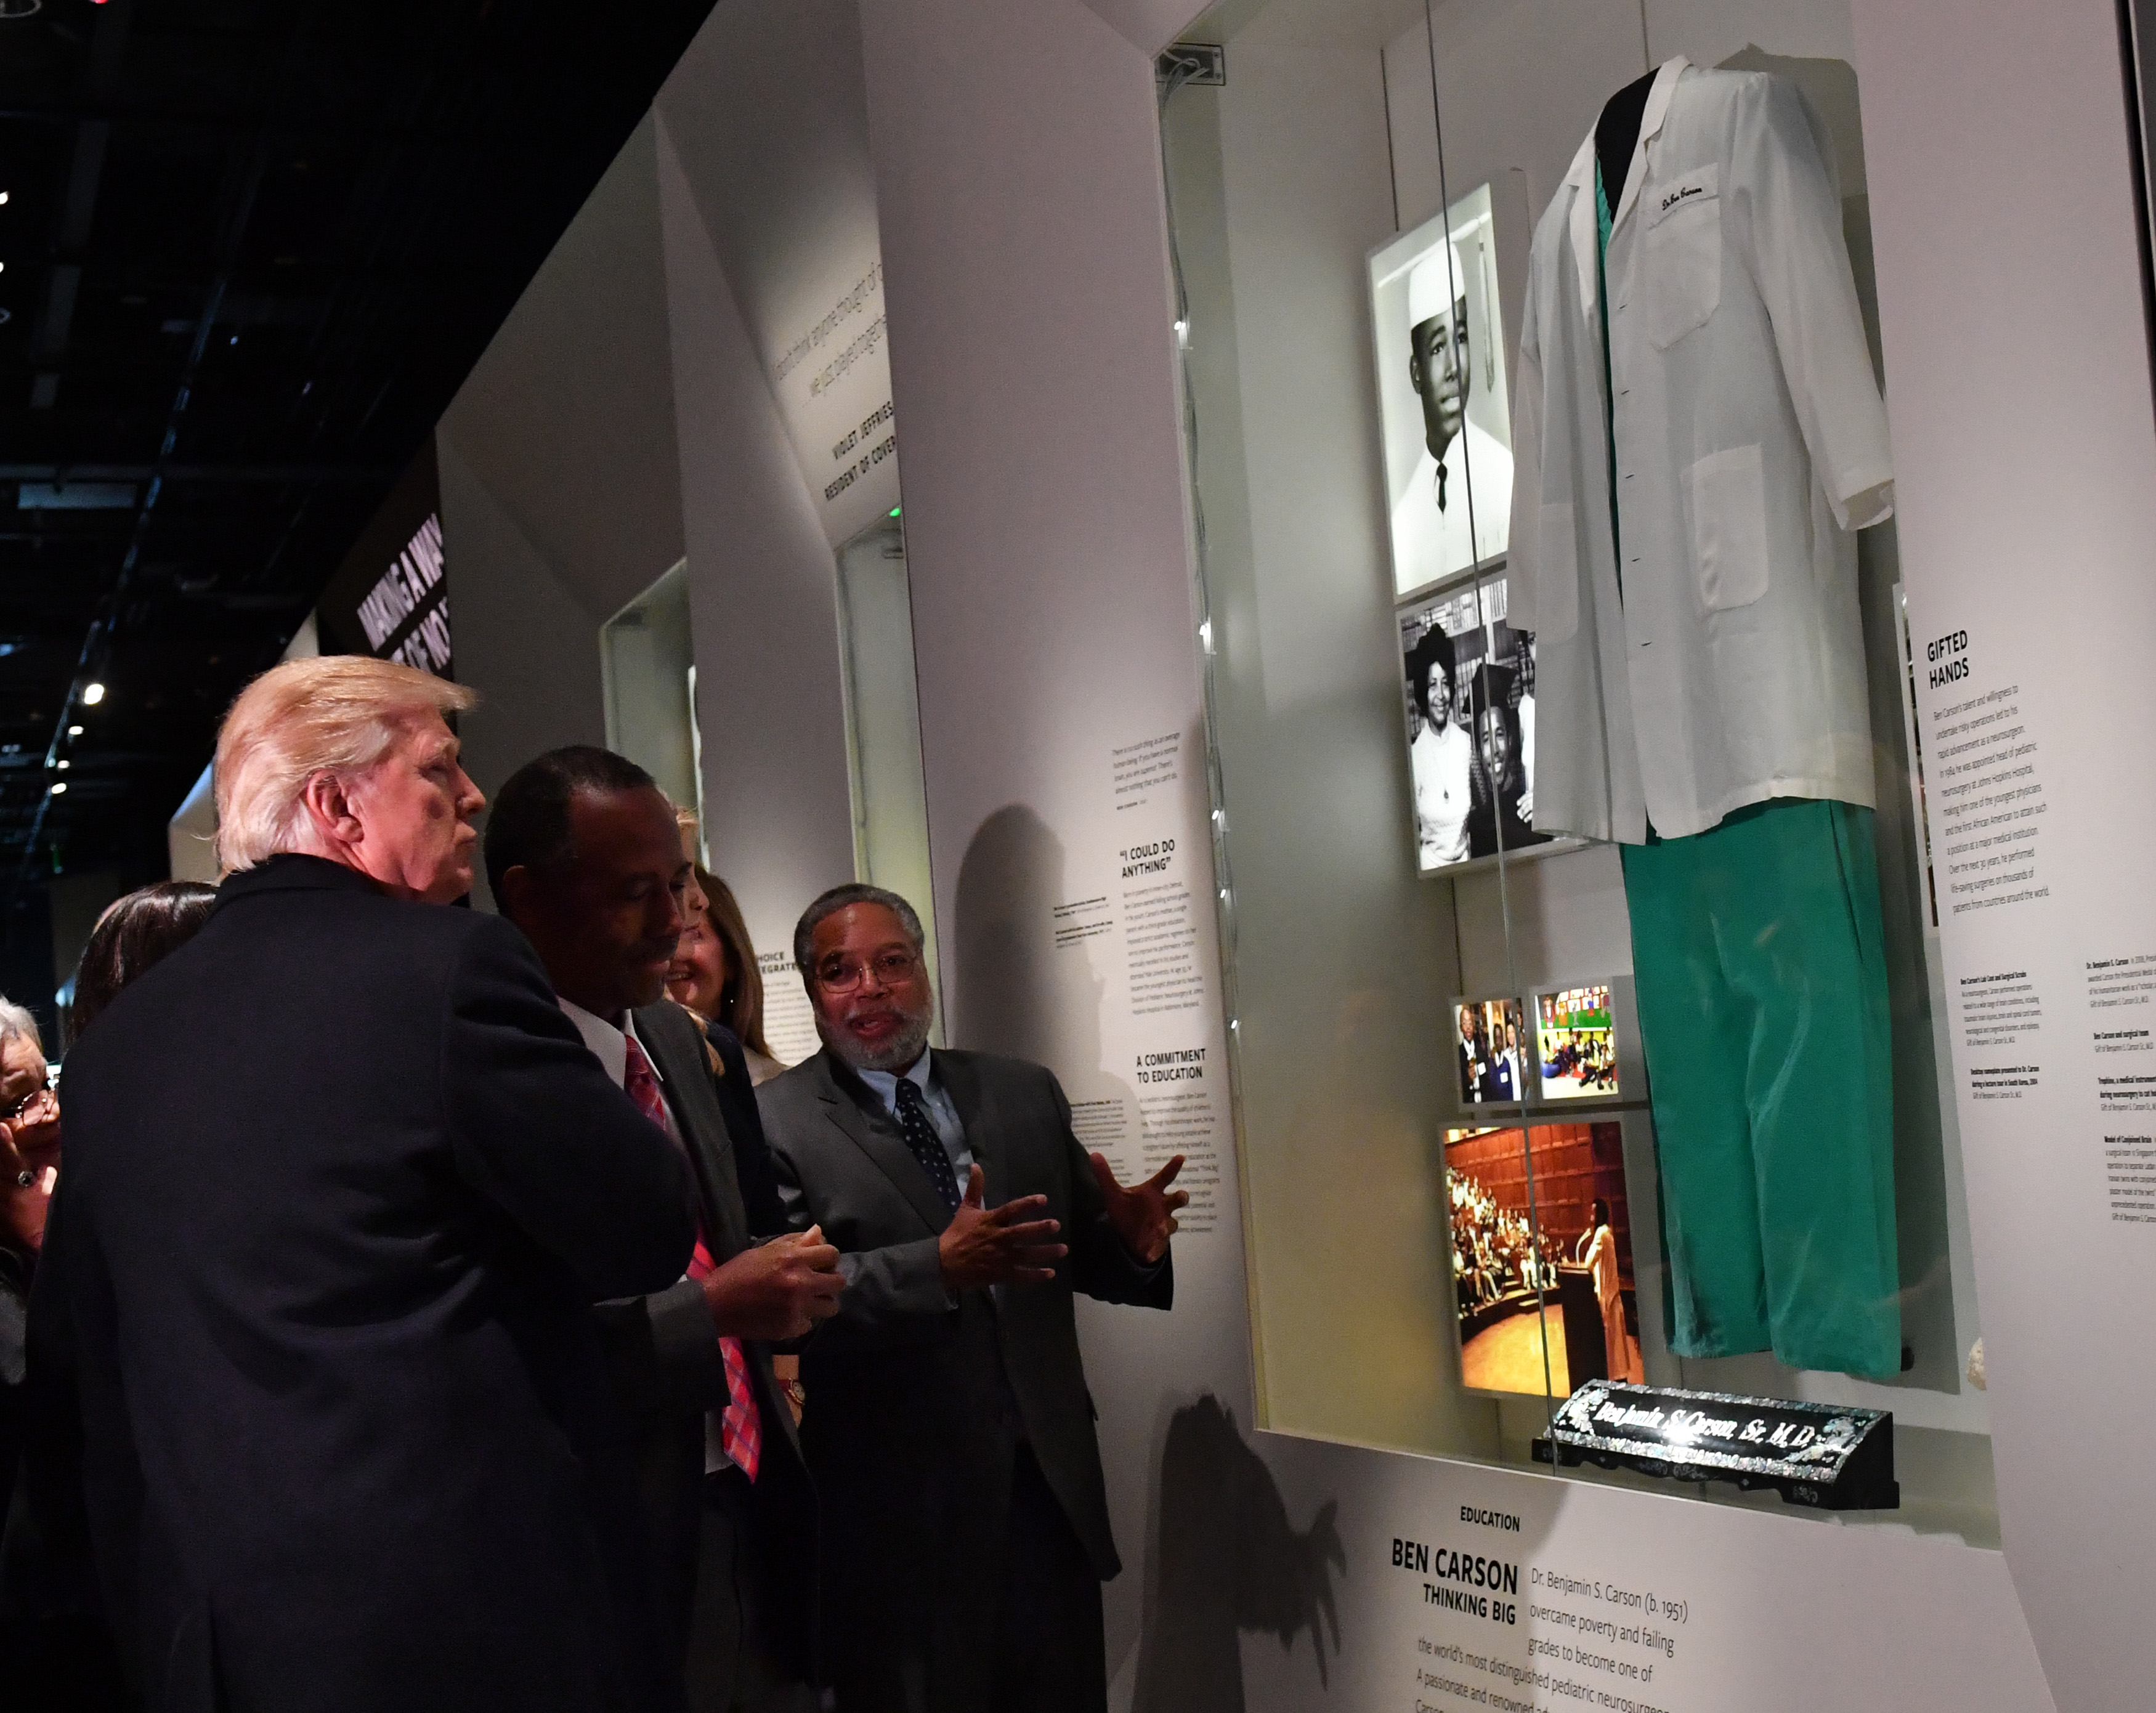 President Donald Trump and Housing and Urban Development nominee Ben Carson look at the Ben Carson exhibit at the Smithsonian National Museum of African American History and Culture   (Photo by Kevin Dietsch - Pool/Getty Images)